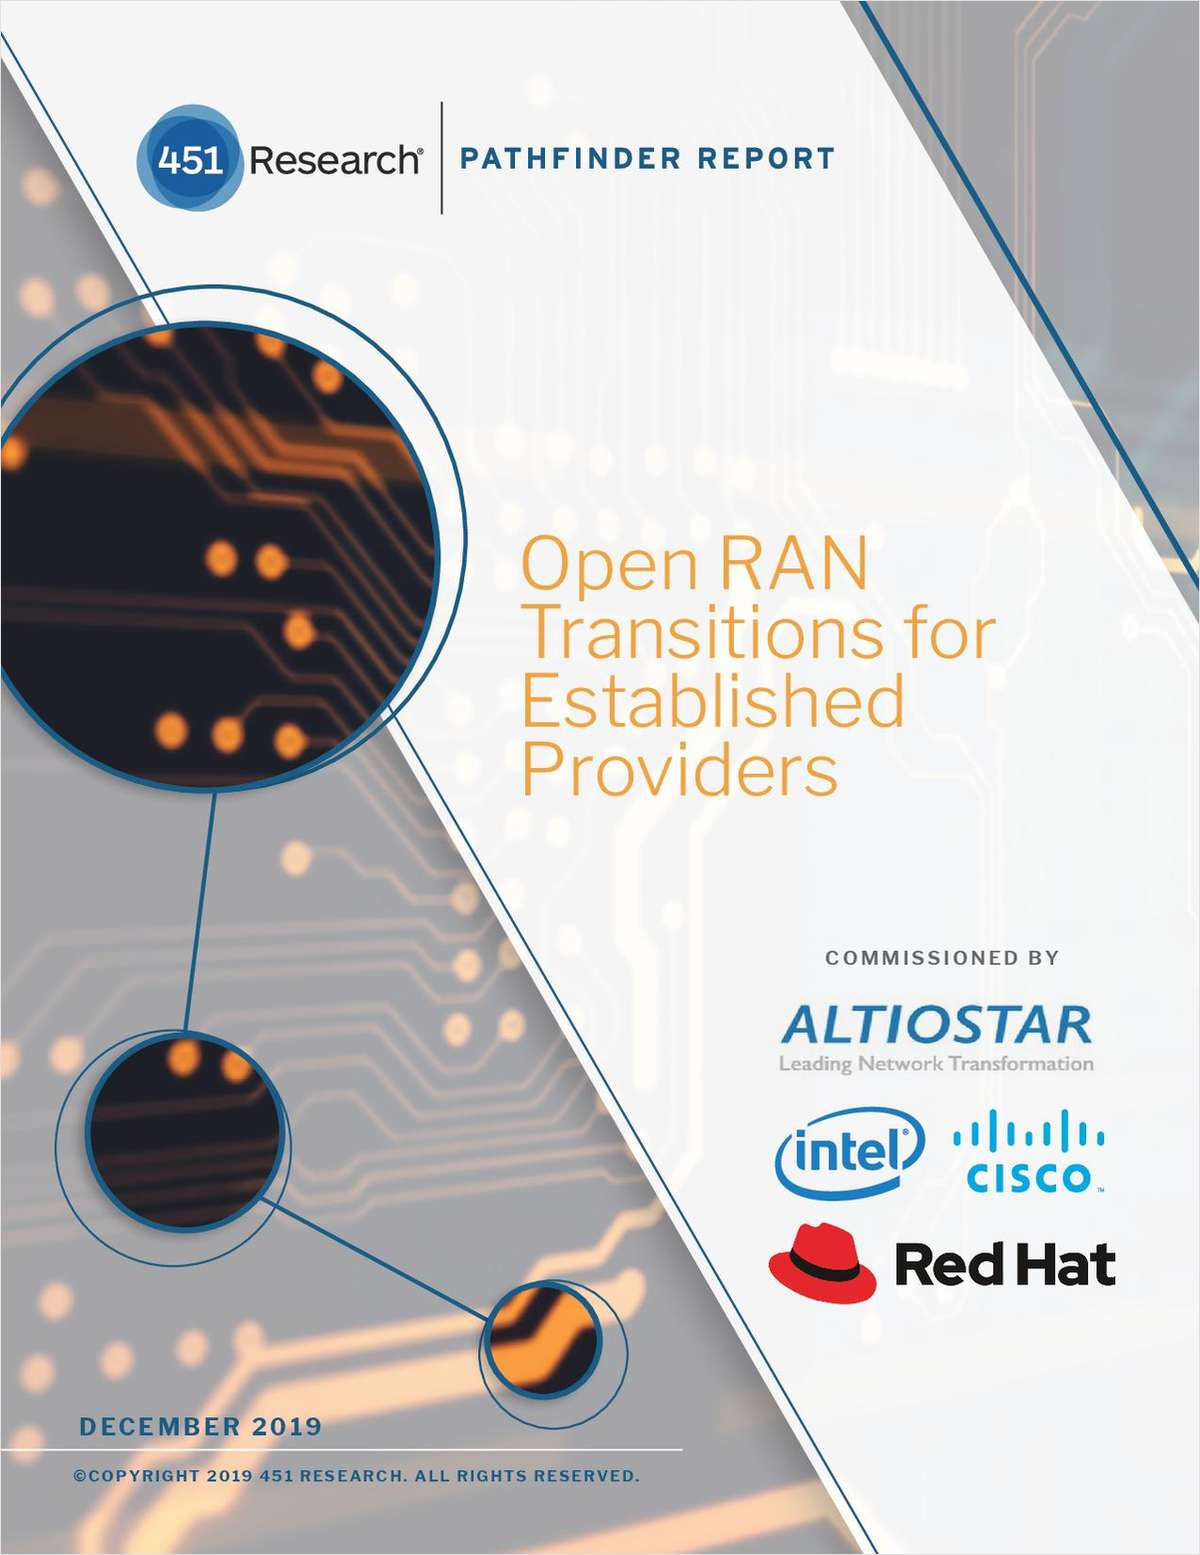 Open RAN Transitions for Established Providers